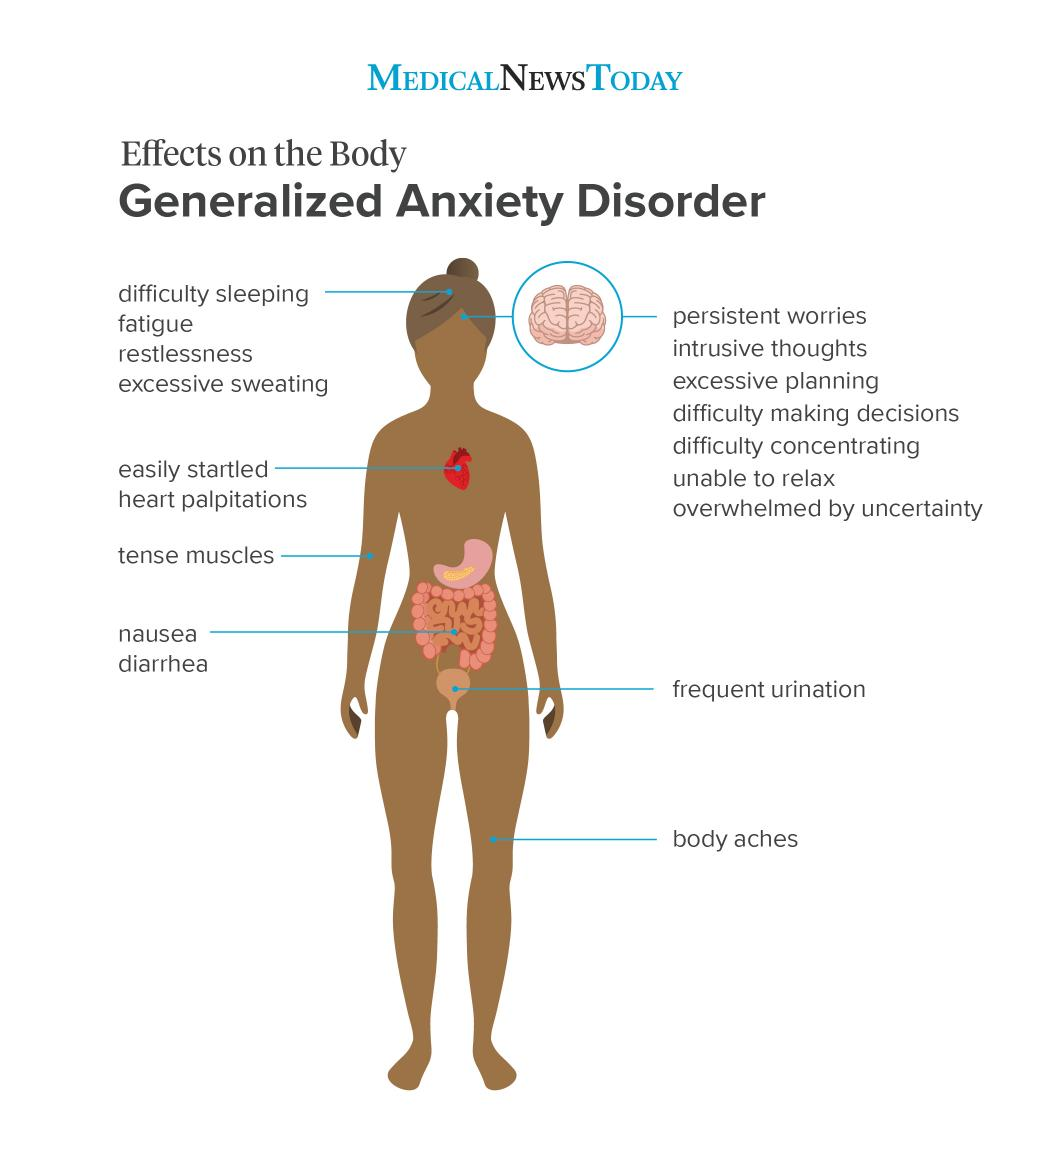 an infographic of generalized anxiety disorder